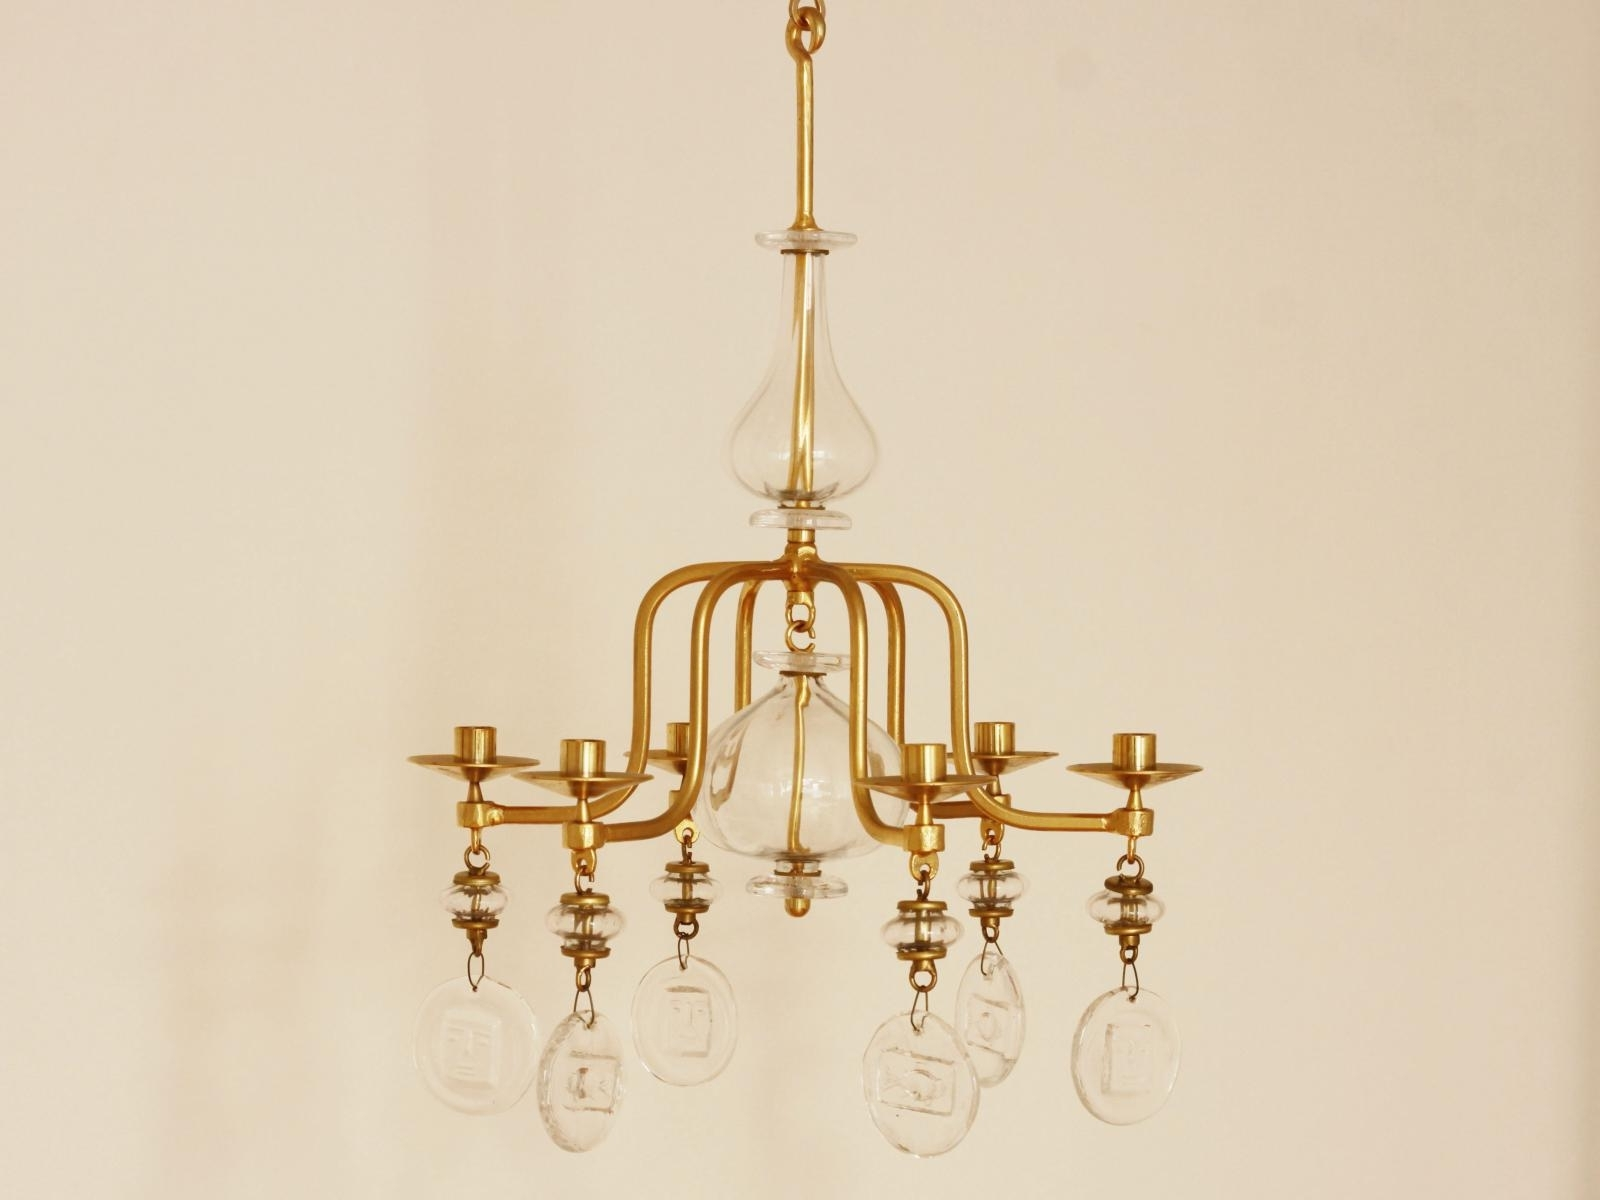 Popular Candle Chandelier Within Large Mid Century Gilded Iron & Glass Candle Chandeliererik (View 13 of 20)